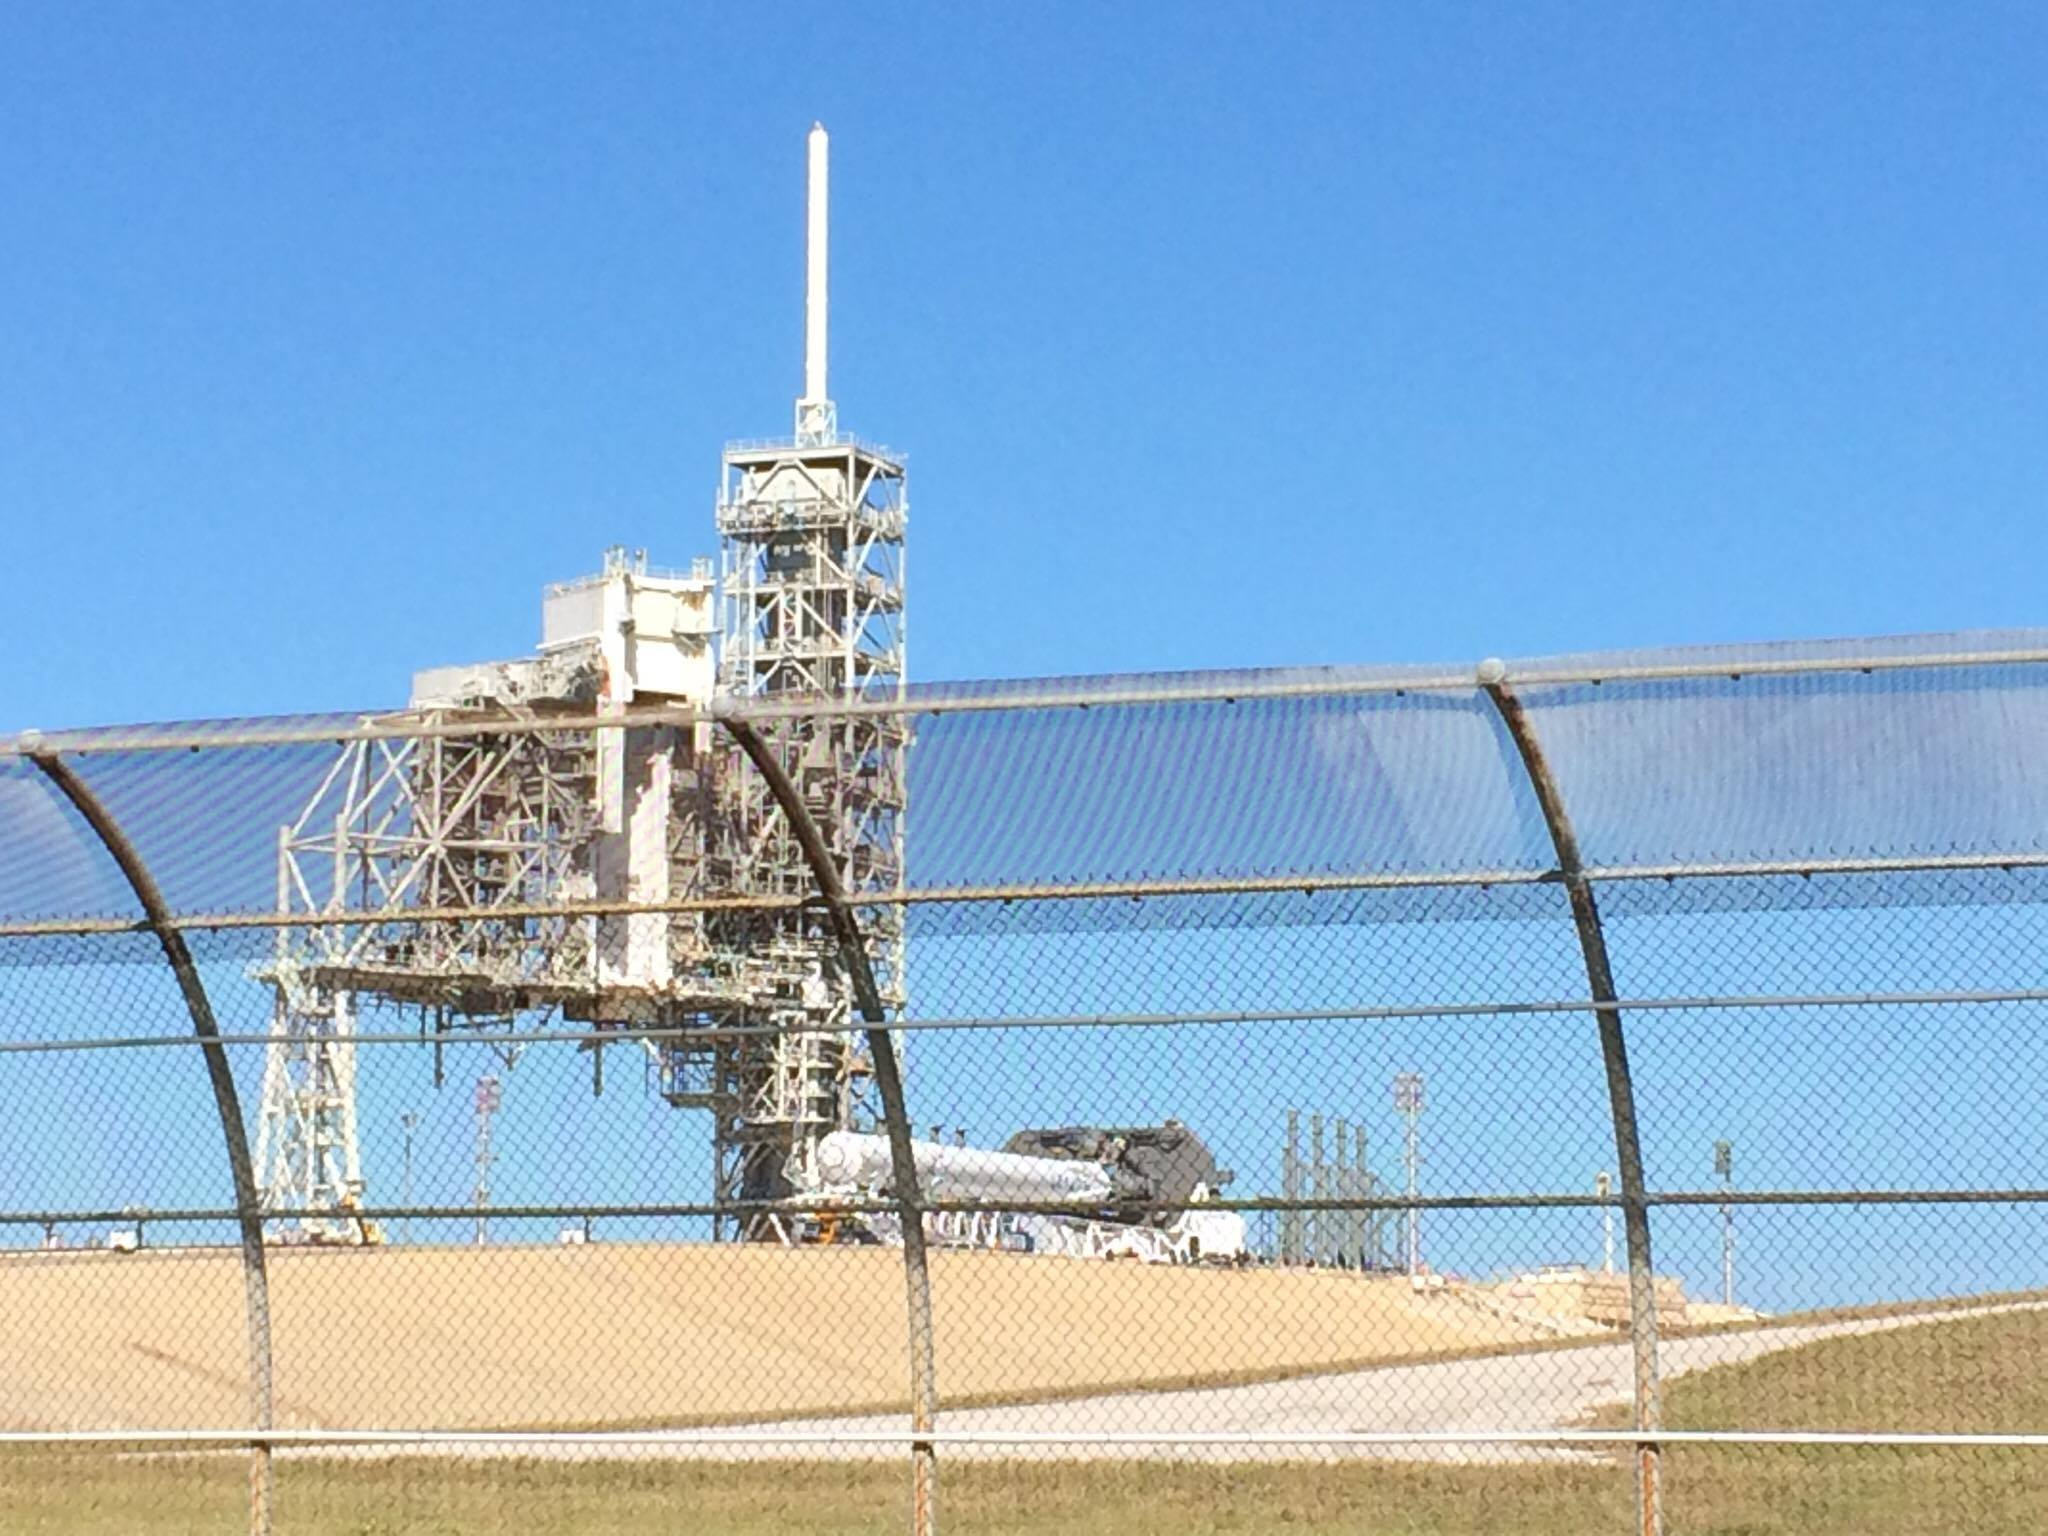 The SpaceX Falcon 9 awaiting a static-fire test at Kennedy Space Center Launch Complex 39A